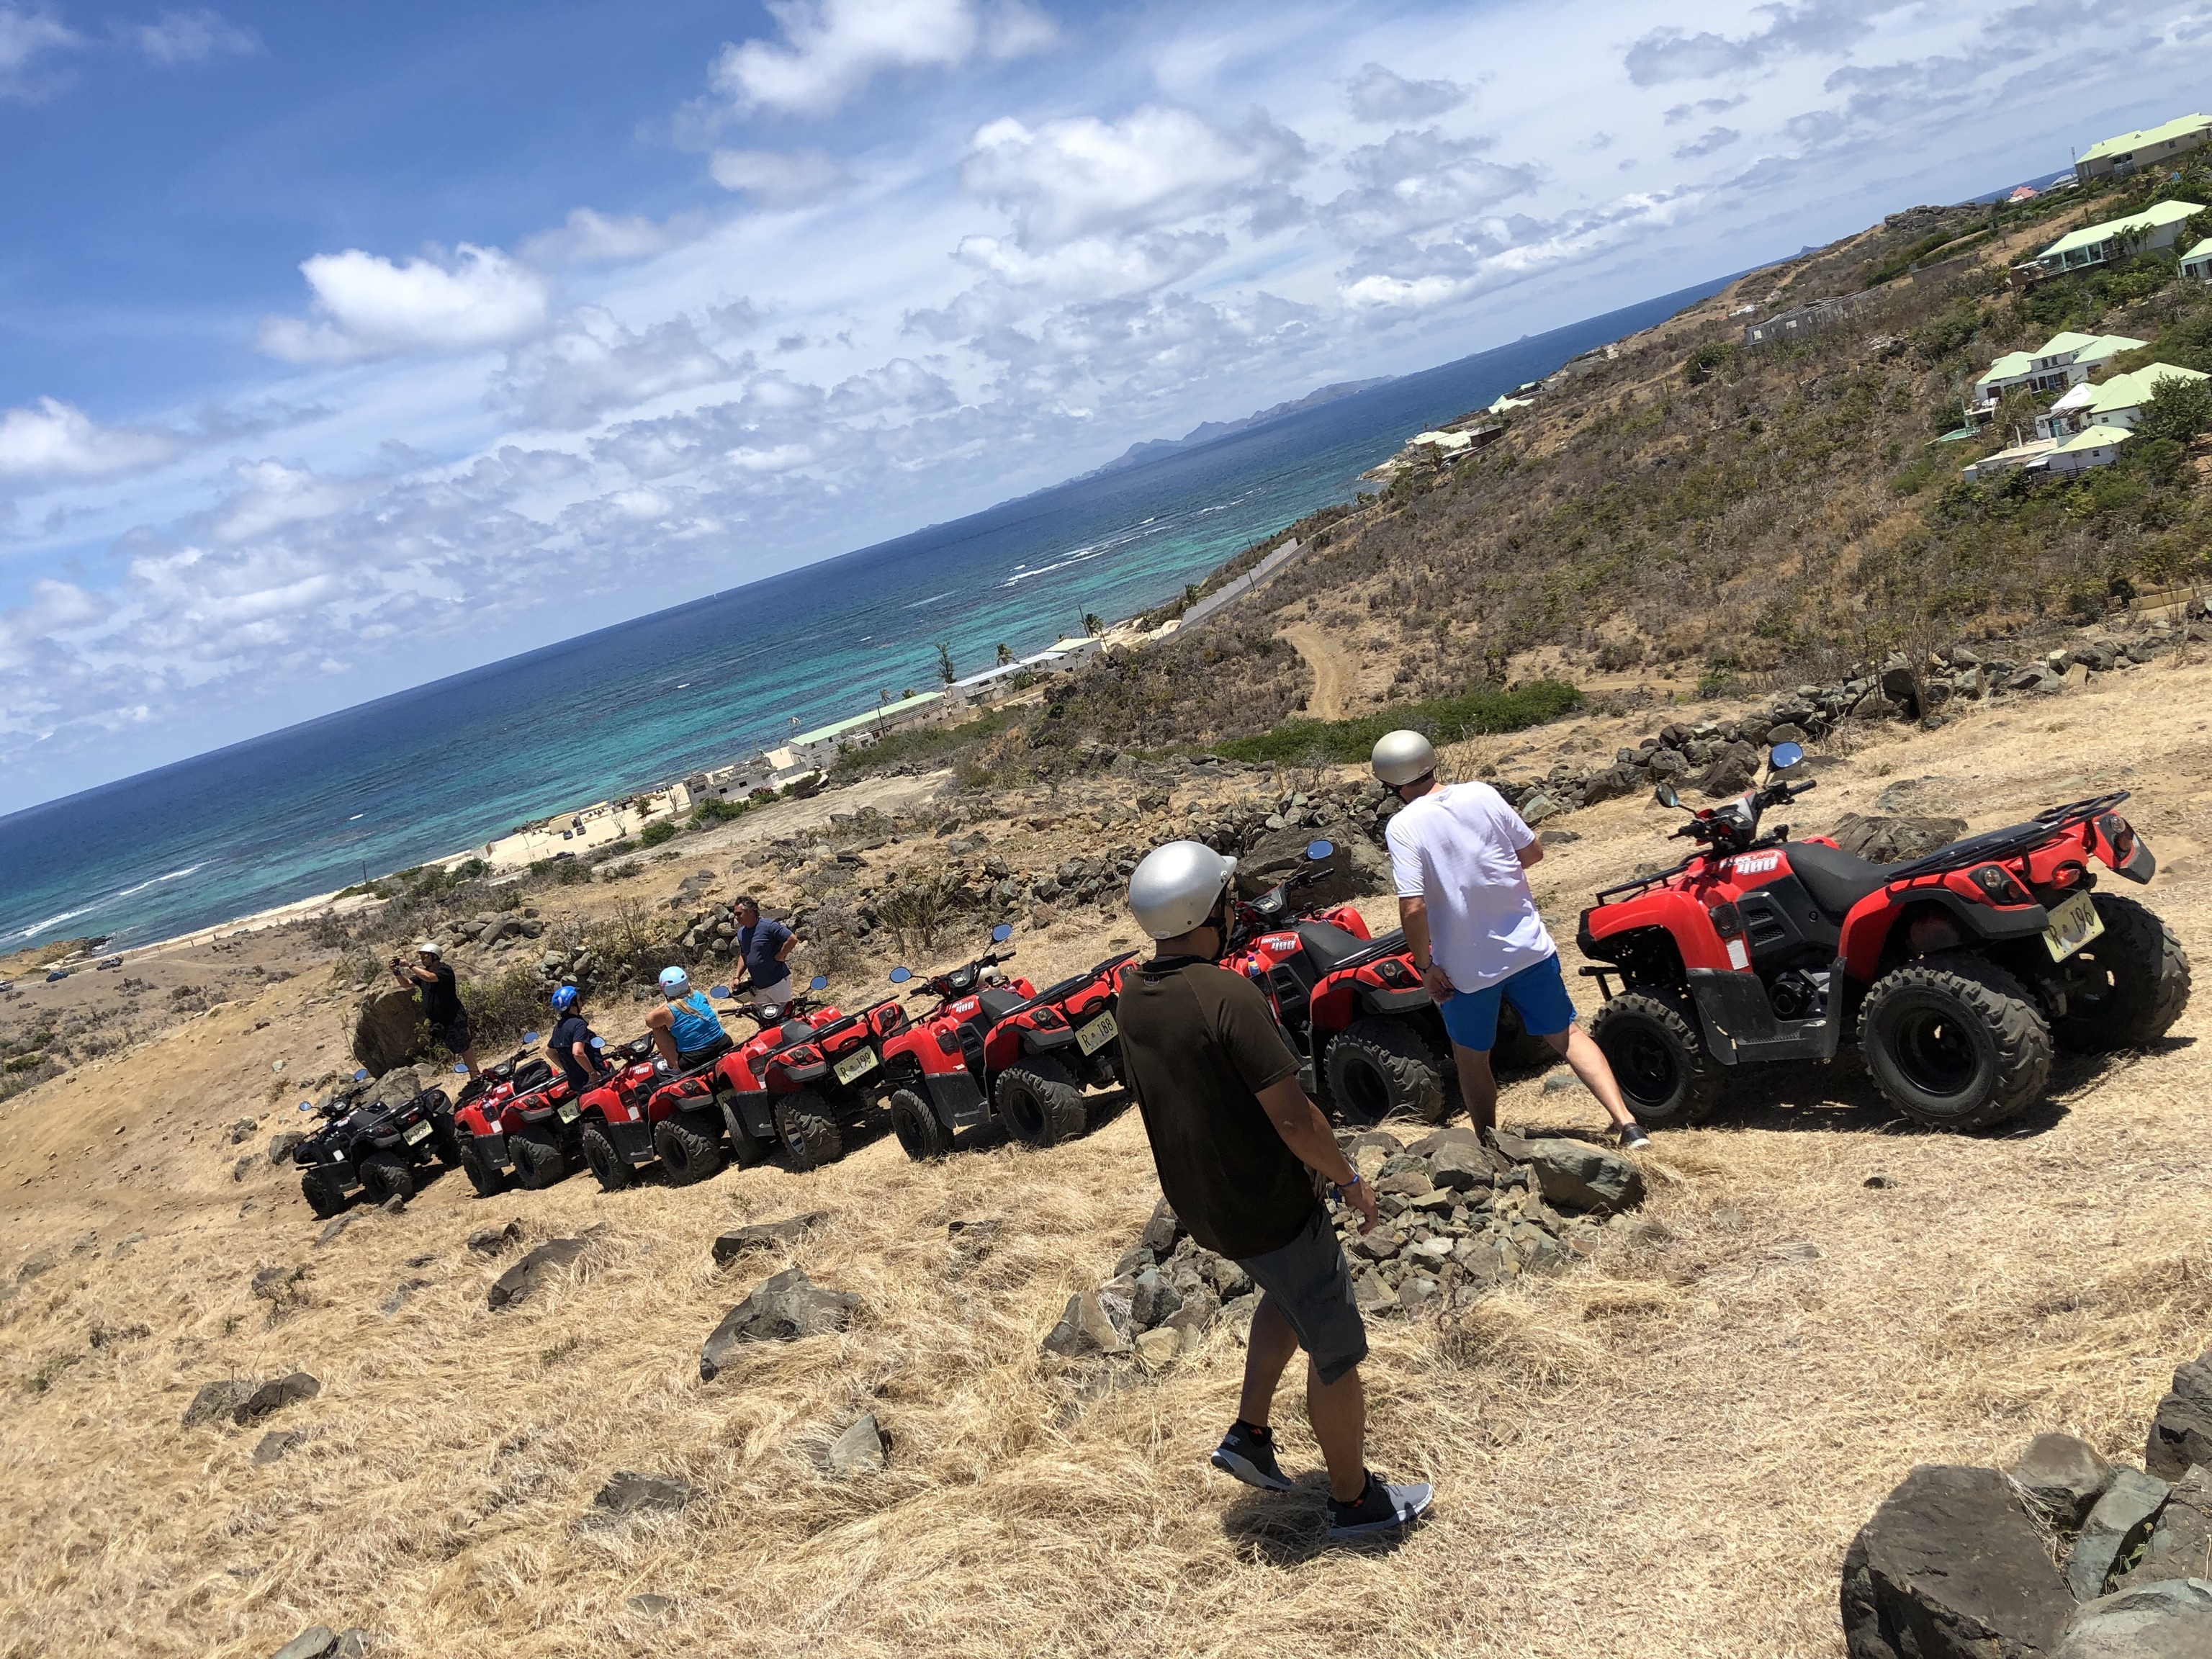 183_Riding-through-StMaarten-in-style-